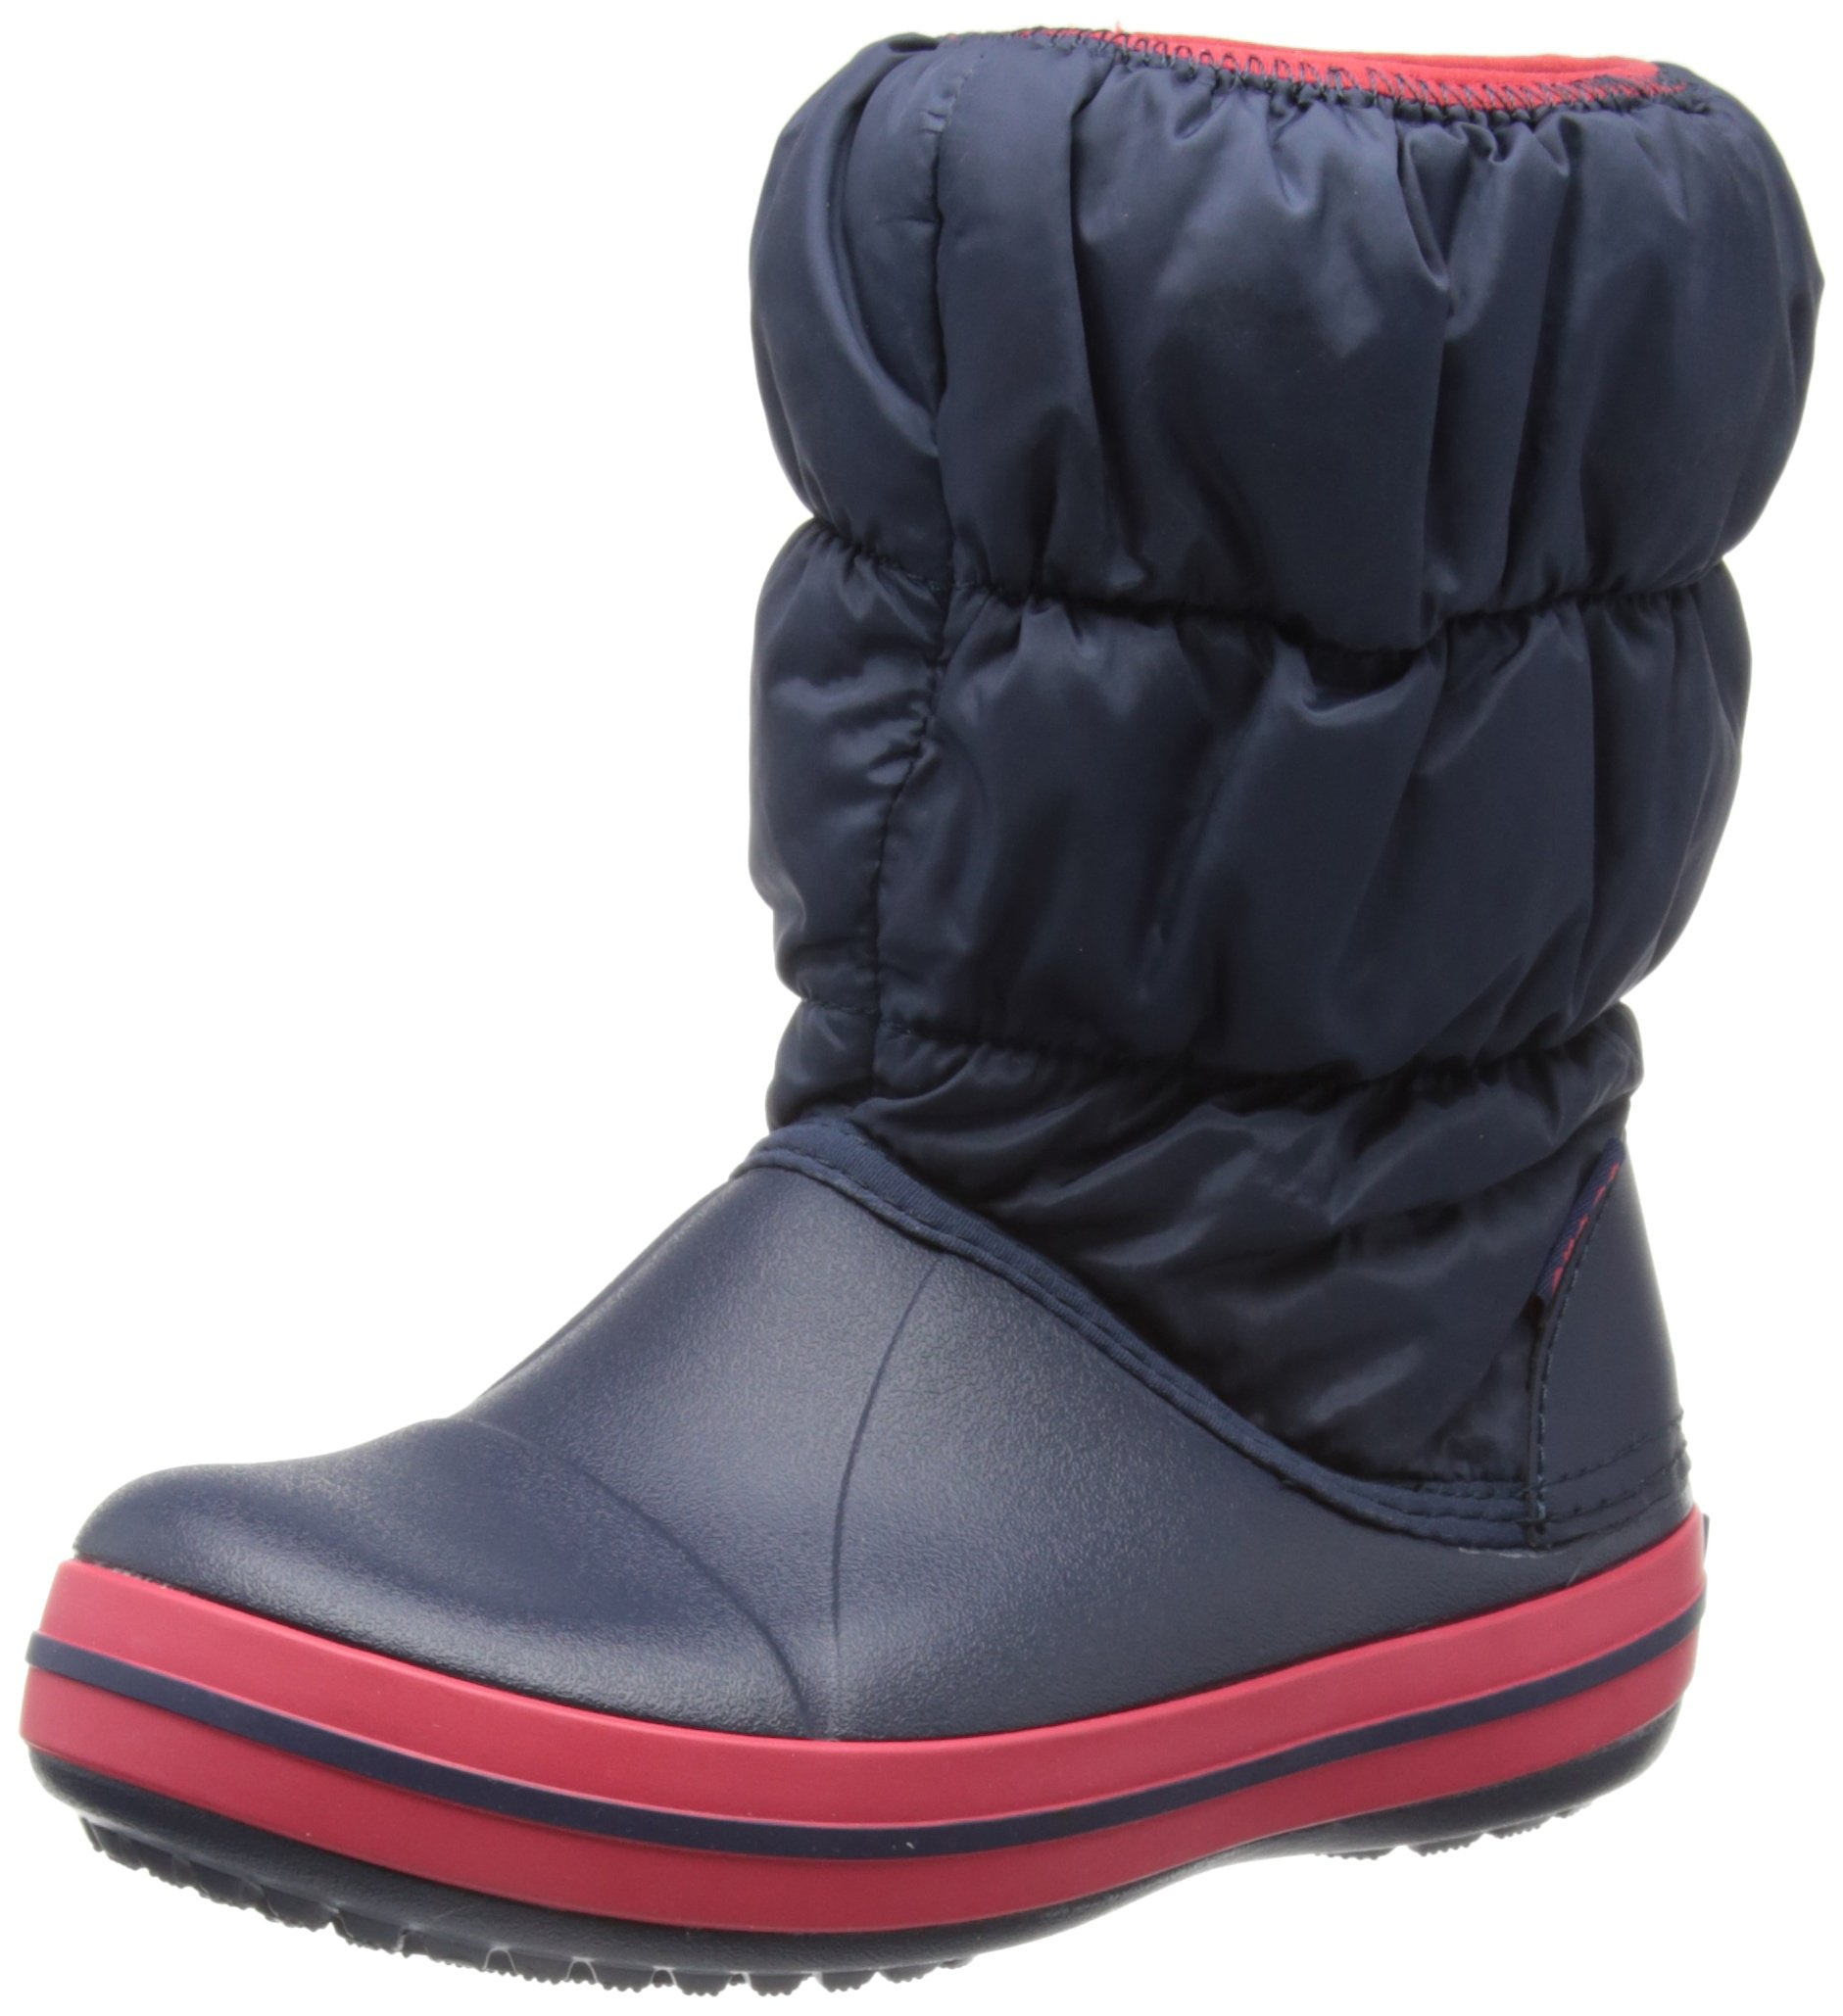 Crocs Kids' Winter Puff Boot (Toddler/Little Kid),Navy/Red,13 M US Little Kid